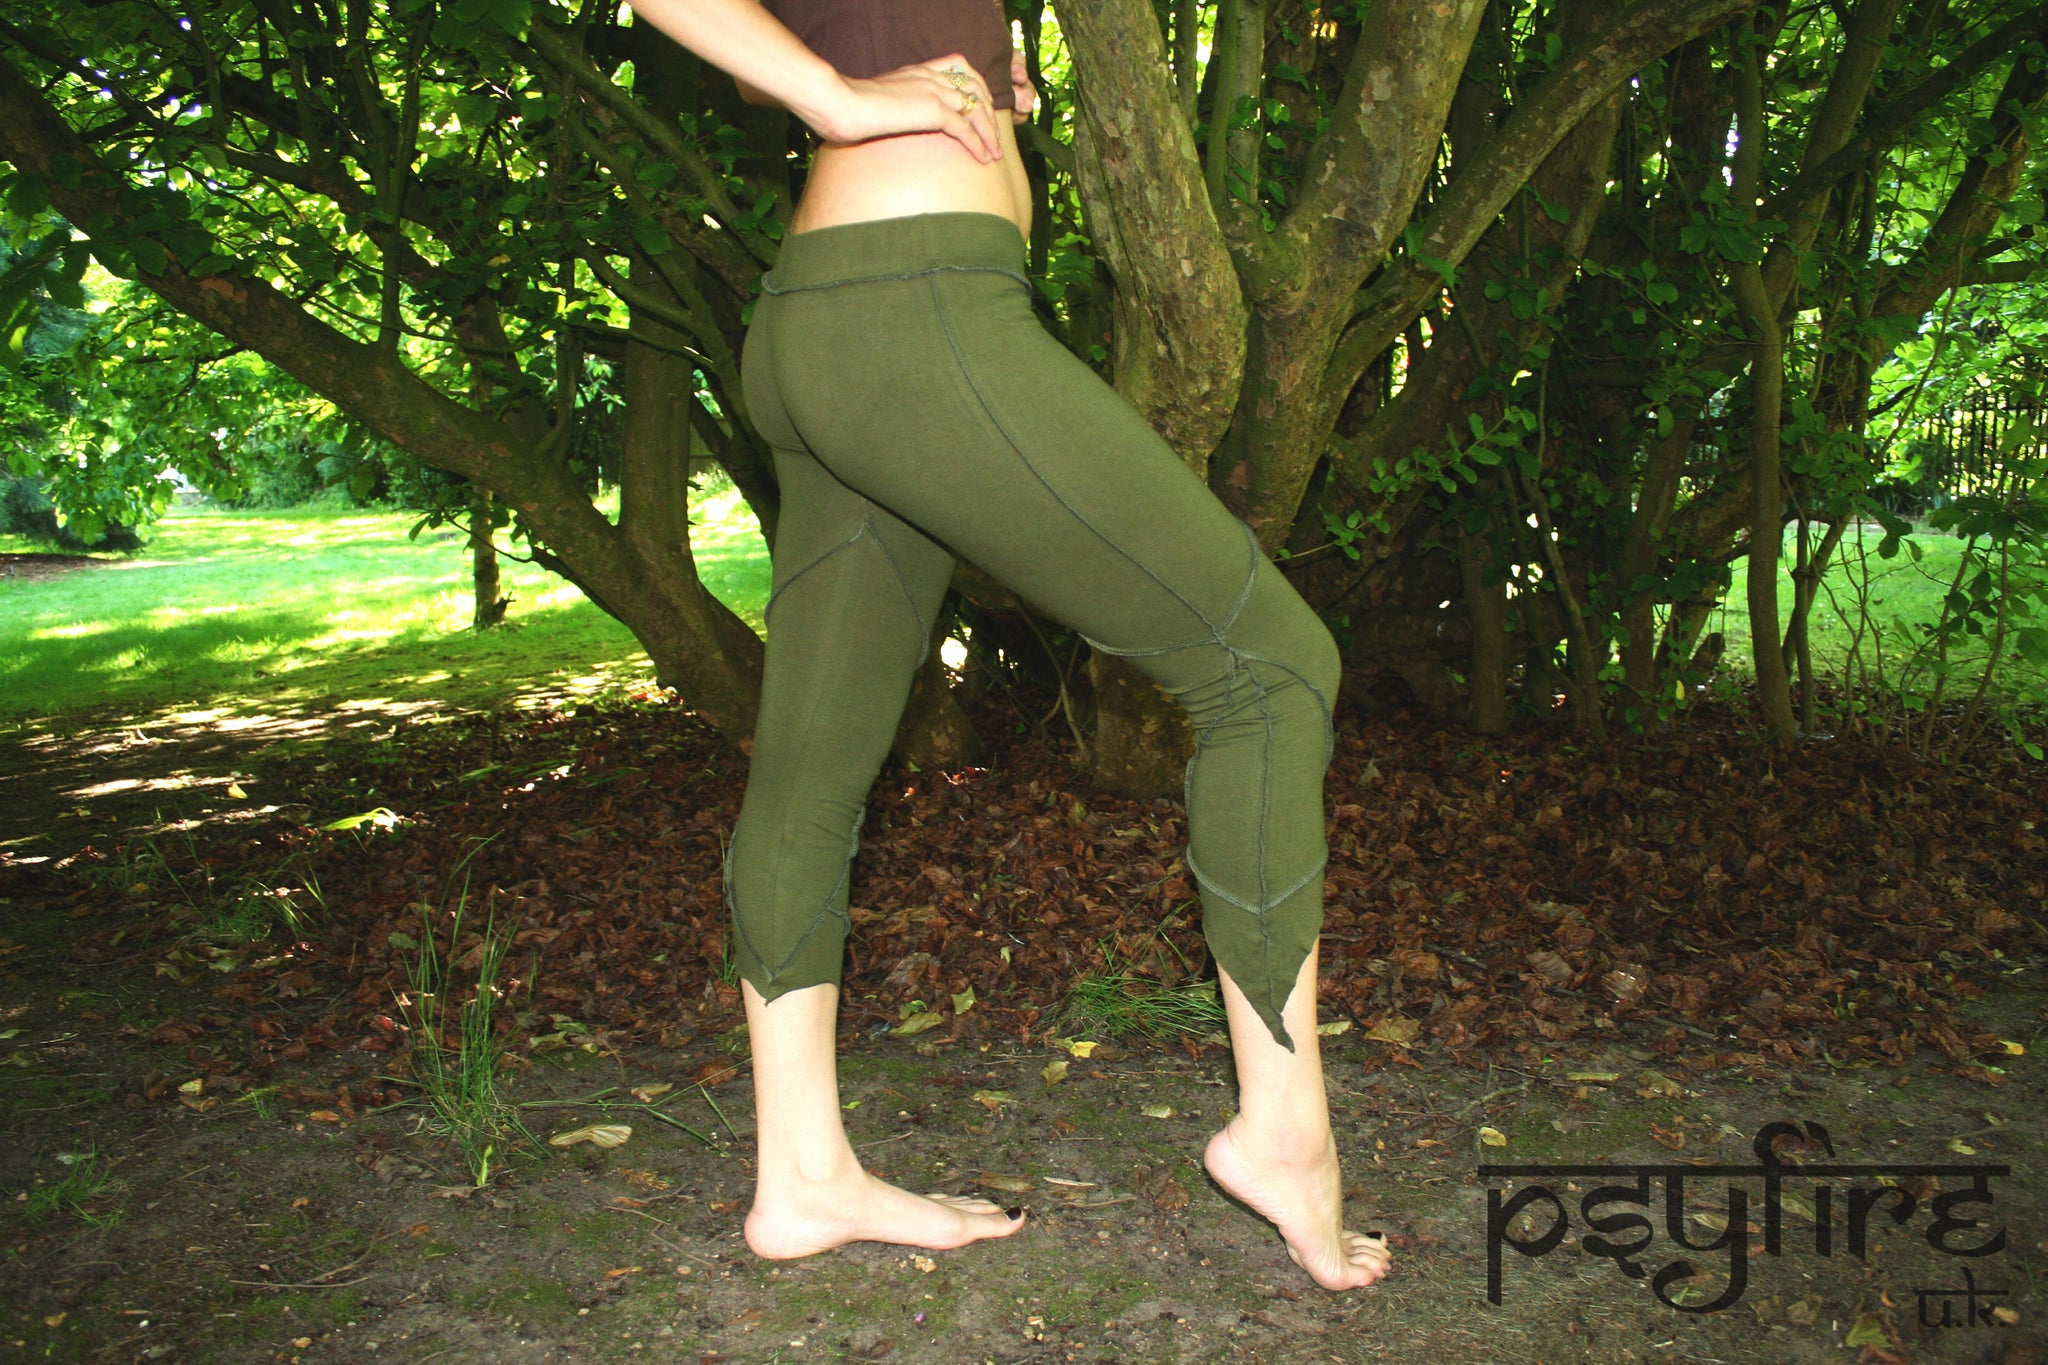 GREEN PIXIE Leggings - Hippie Yoga Pants, Festival Leggings, Psytrance Leggings, Yoga Pants, Flow Leggings, Festival Clothing, Pixie, Psy